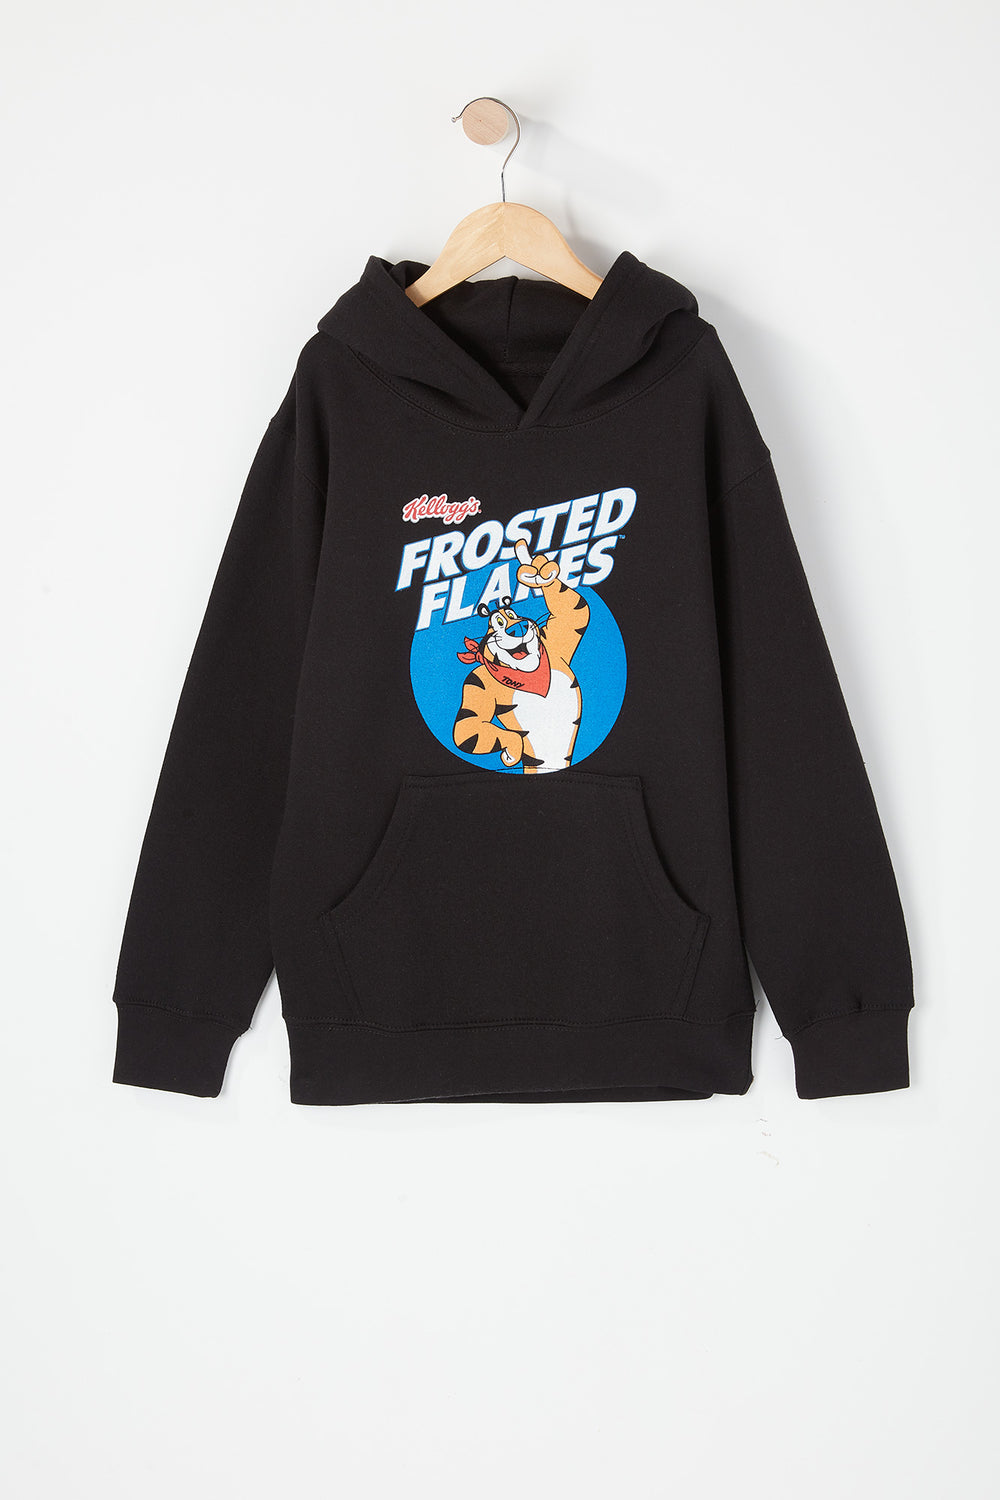 Youth Frosted Flakes Hoodie Black